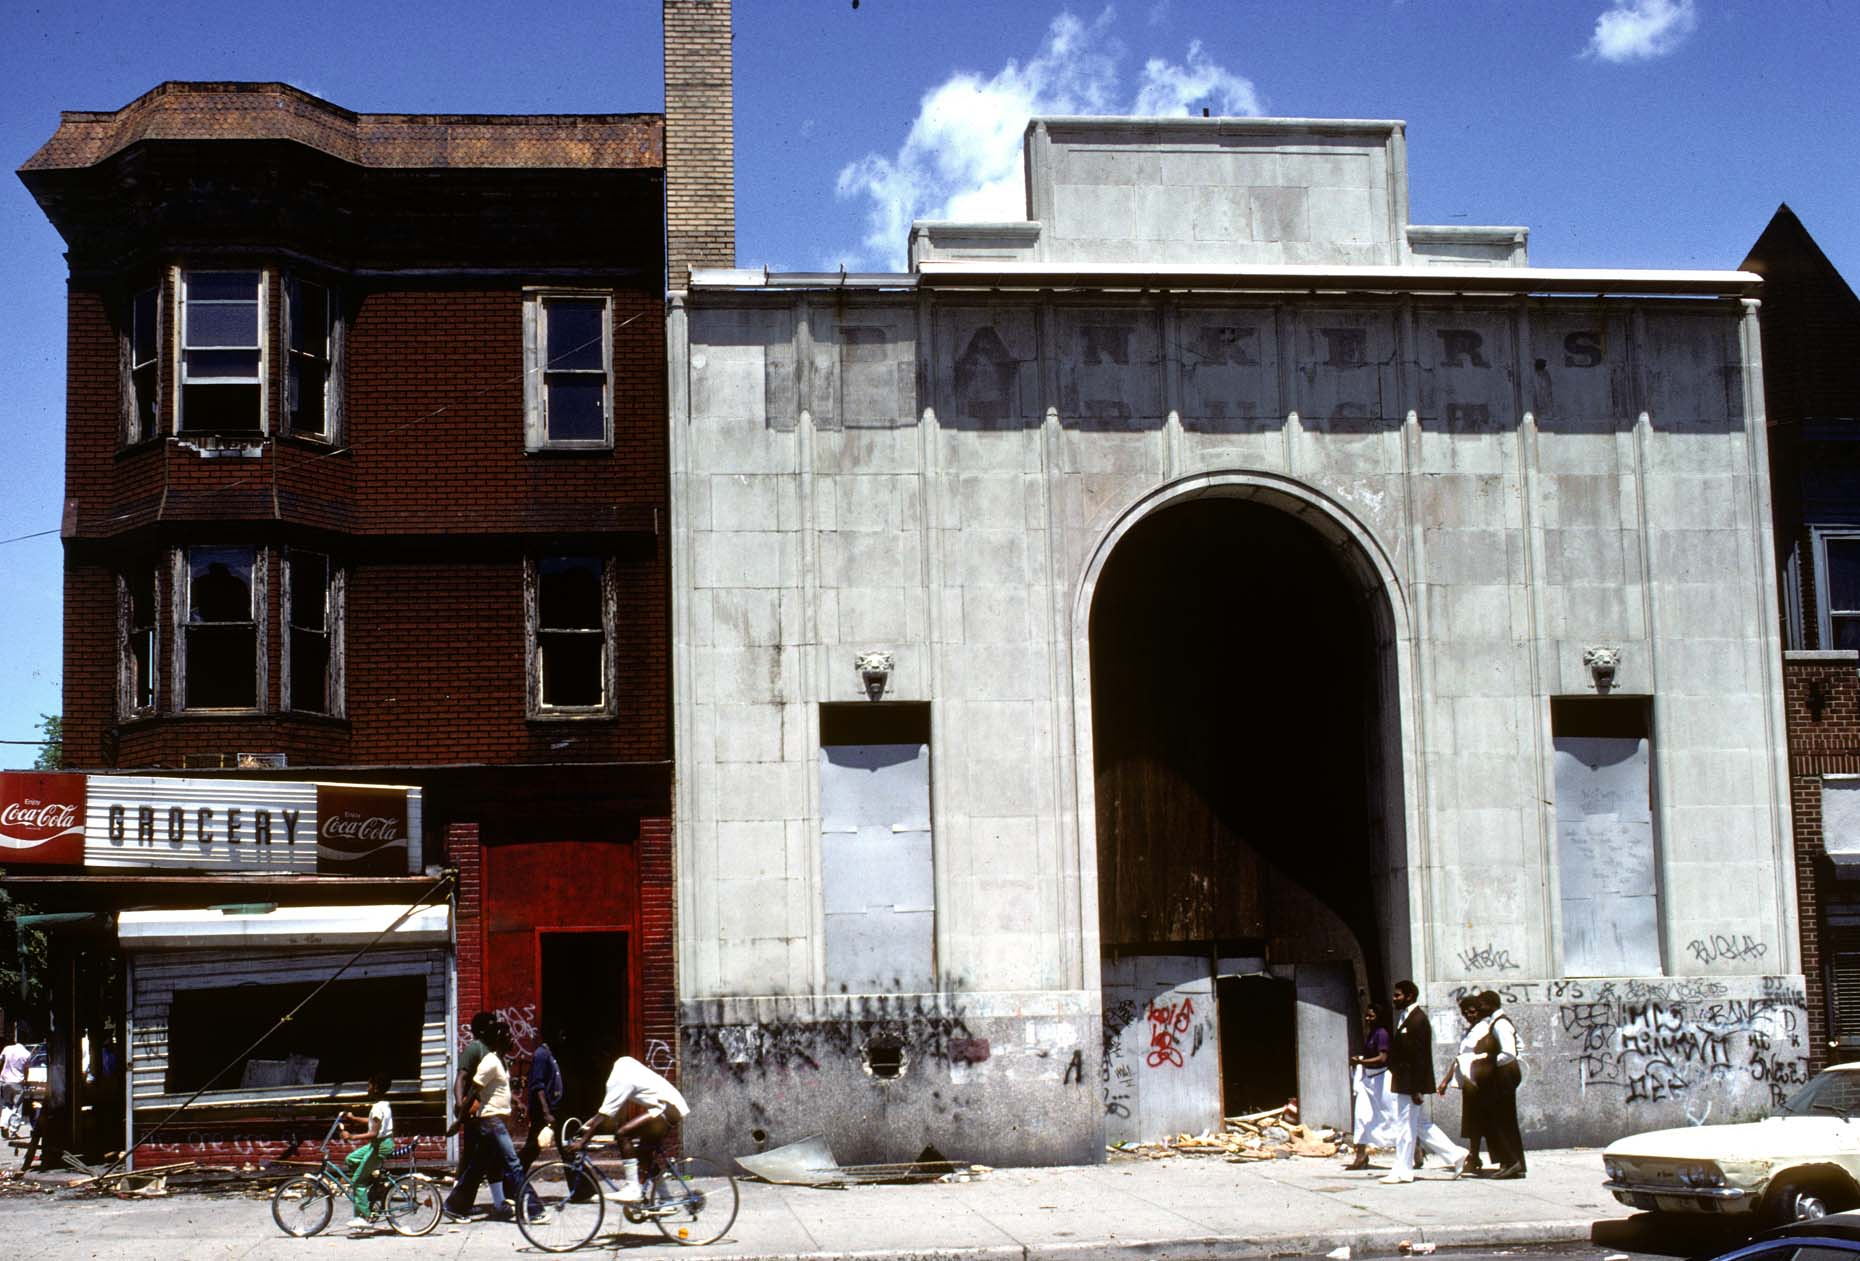 01_Morris Ave at E-DUP1. 169th St, Bronx, 1980_.jpg